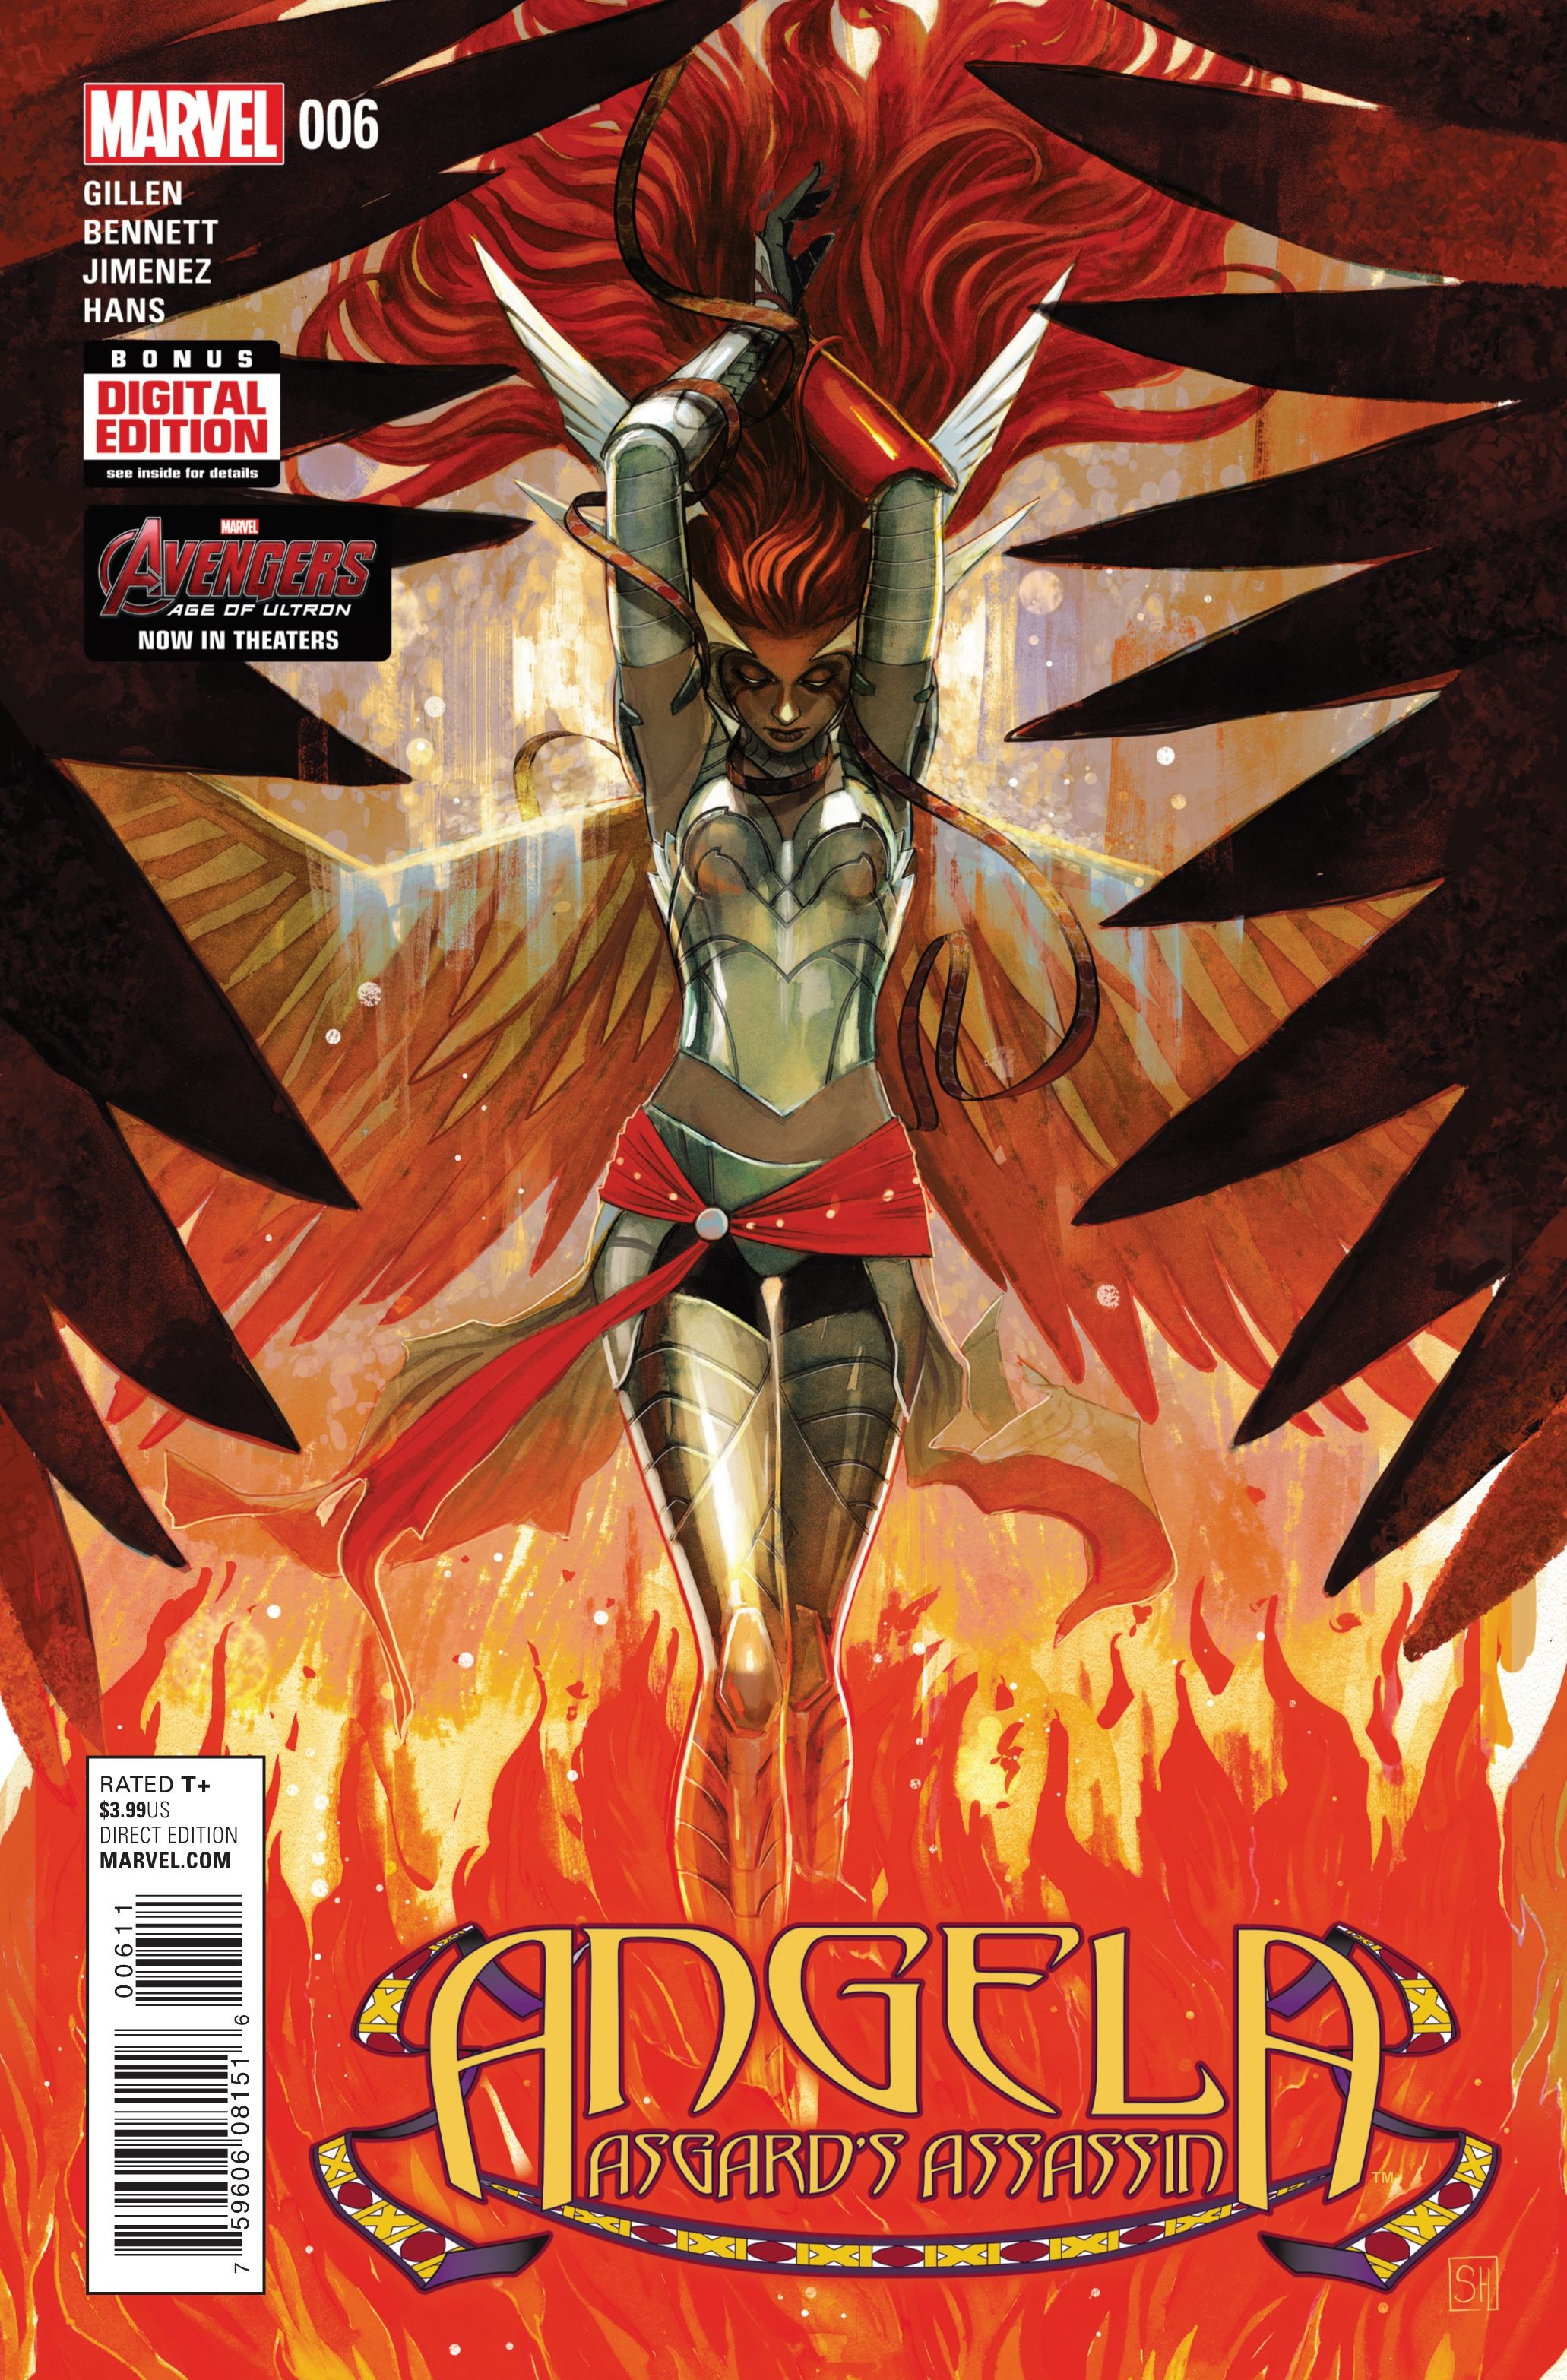 Preview: Angela: Asgard's Assassin #6,   Angela: Asgard's Assassin #6 Story: Kieron Gillen & Marguerite Bennett Art: Phil Jimenez Cover: Stephanie Hans Publisher: Marvel Publicat...,  #All-Comic #All-ComicPreviews #Angela:Asgard'sAssassin #Comics #KieronGillen #MargueriteBennett #Marvel #PhilJimenez #Previews #StephanieHans